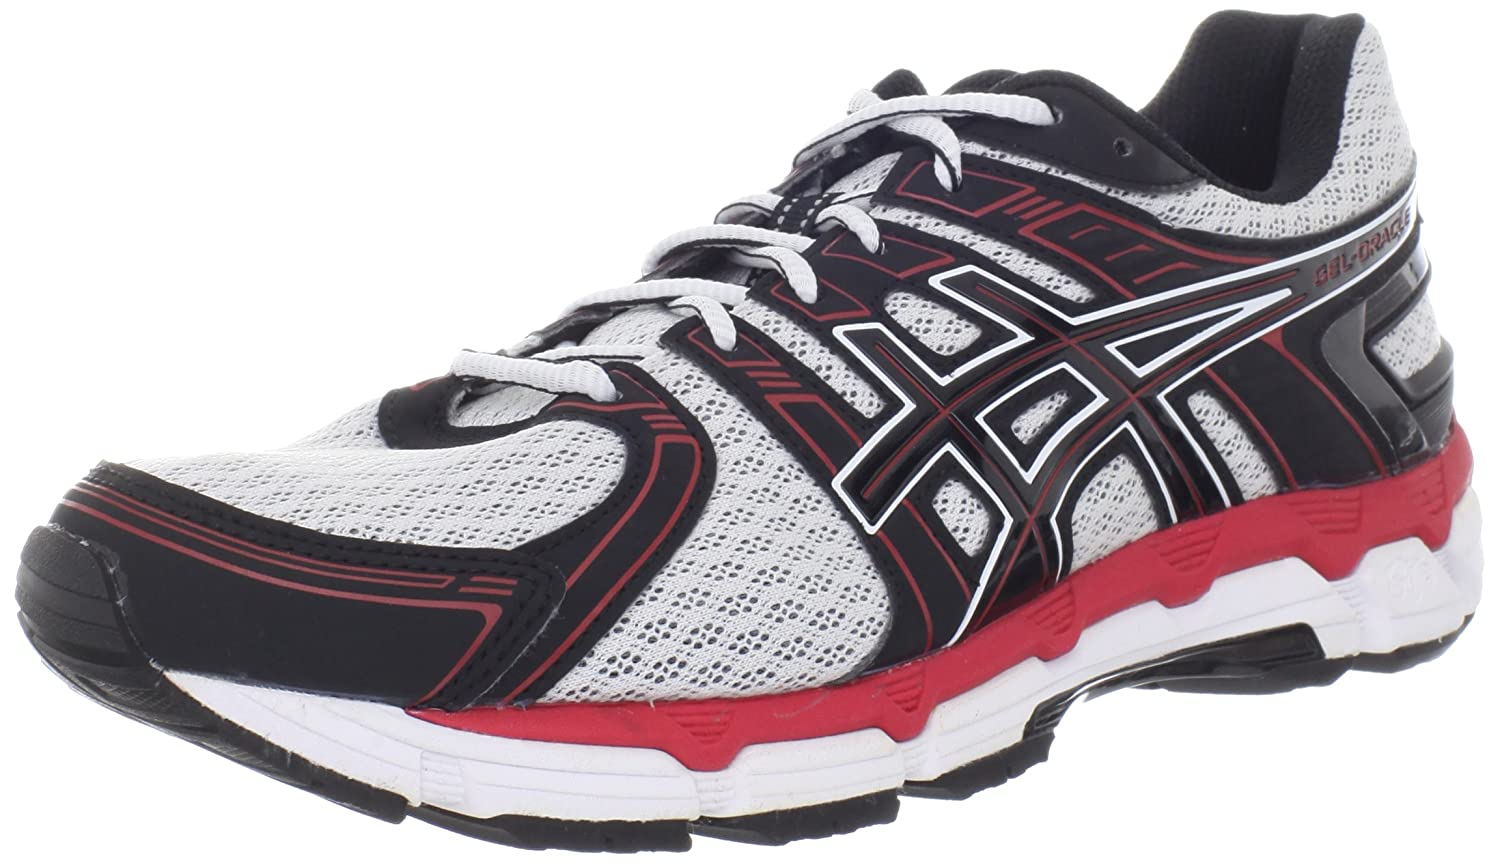 asics shoes 1990s movies and tvs star city 649133